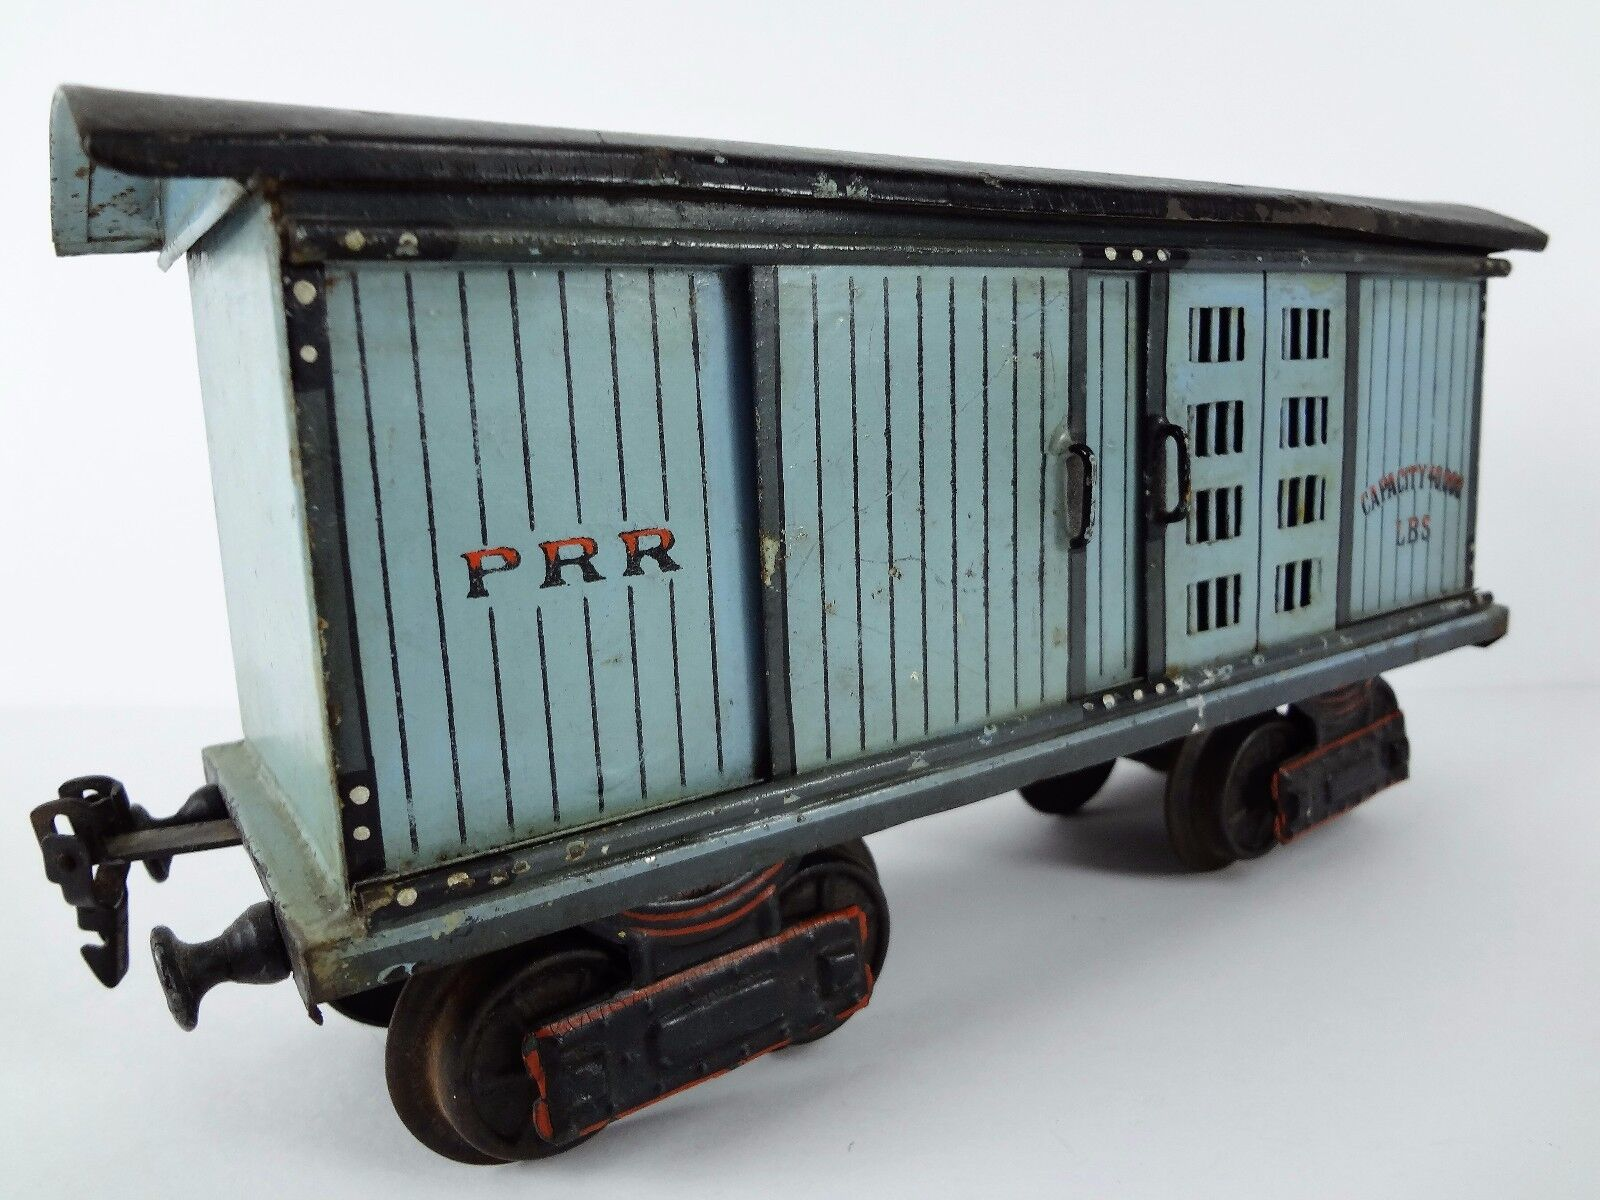 (P.R.R.   Pennsy) MARKLIN PRE-WAR Trains – 1 GAUGE Vintage TIN Train BOX Car Toy